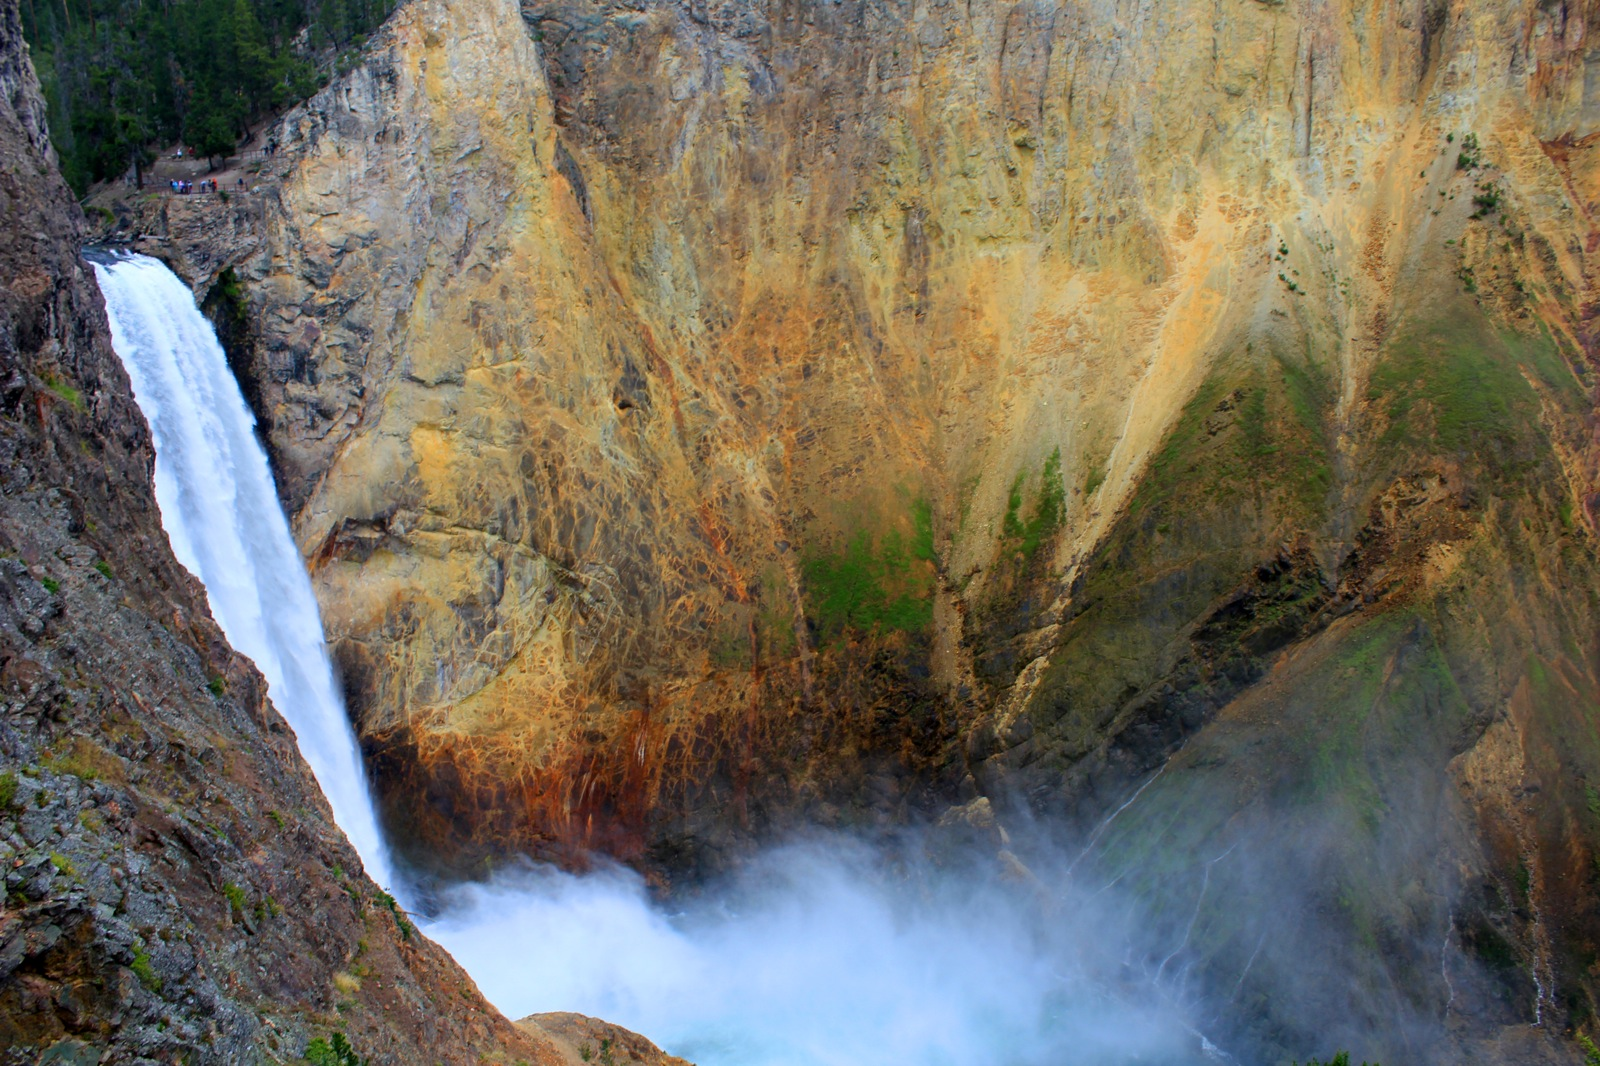 Mist rises up from an enormous waterfall cascading into a giant, deep canyon.